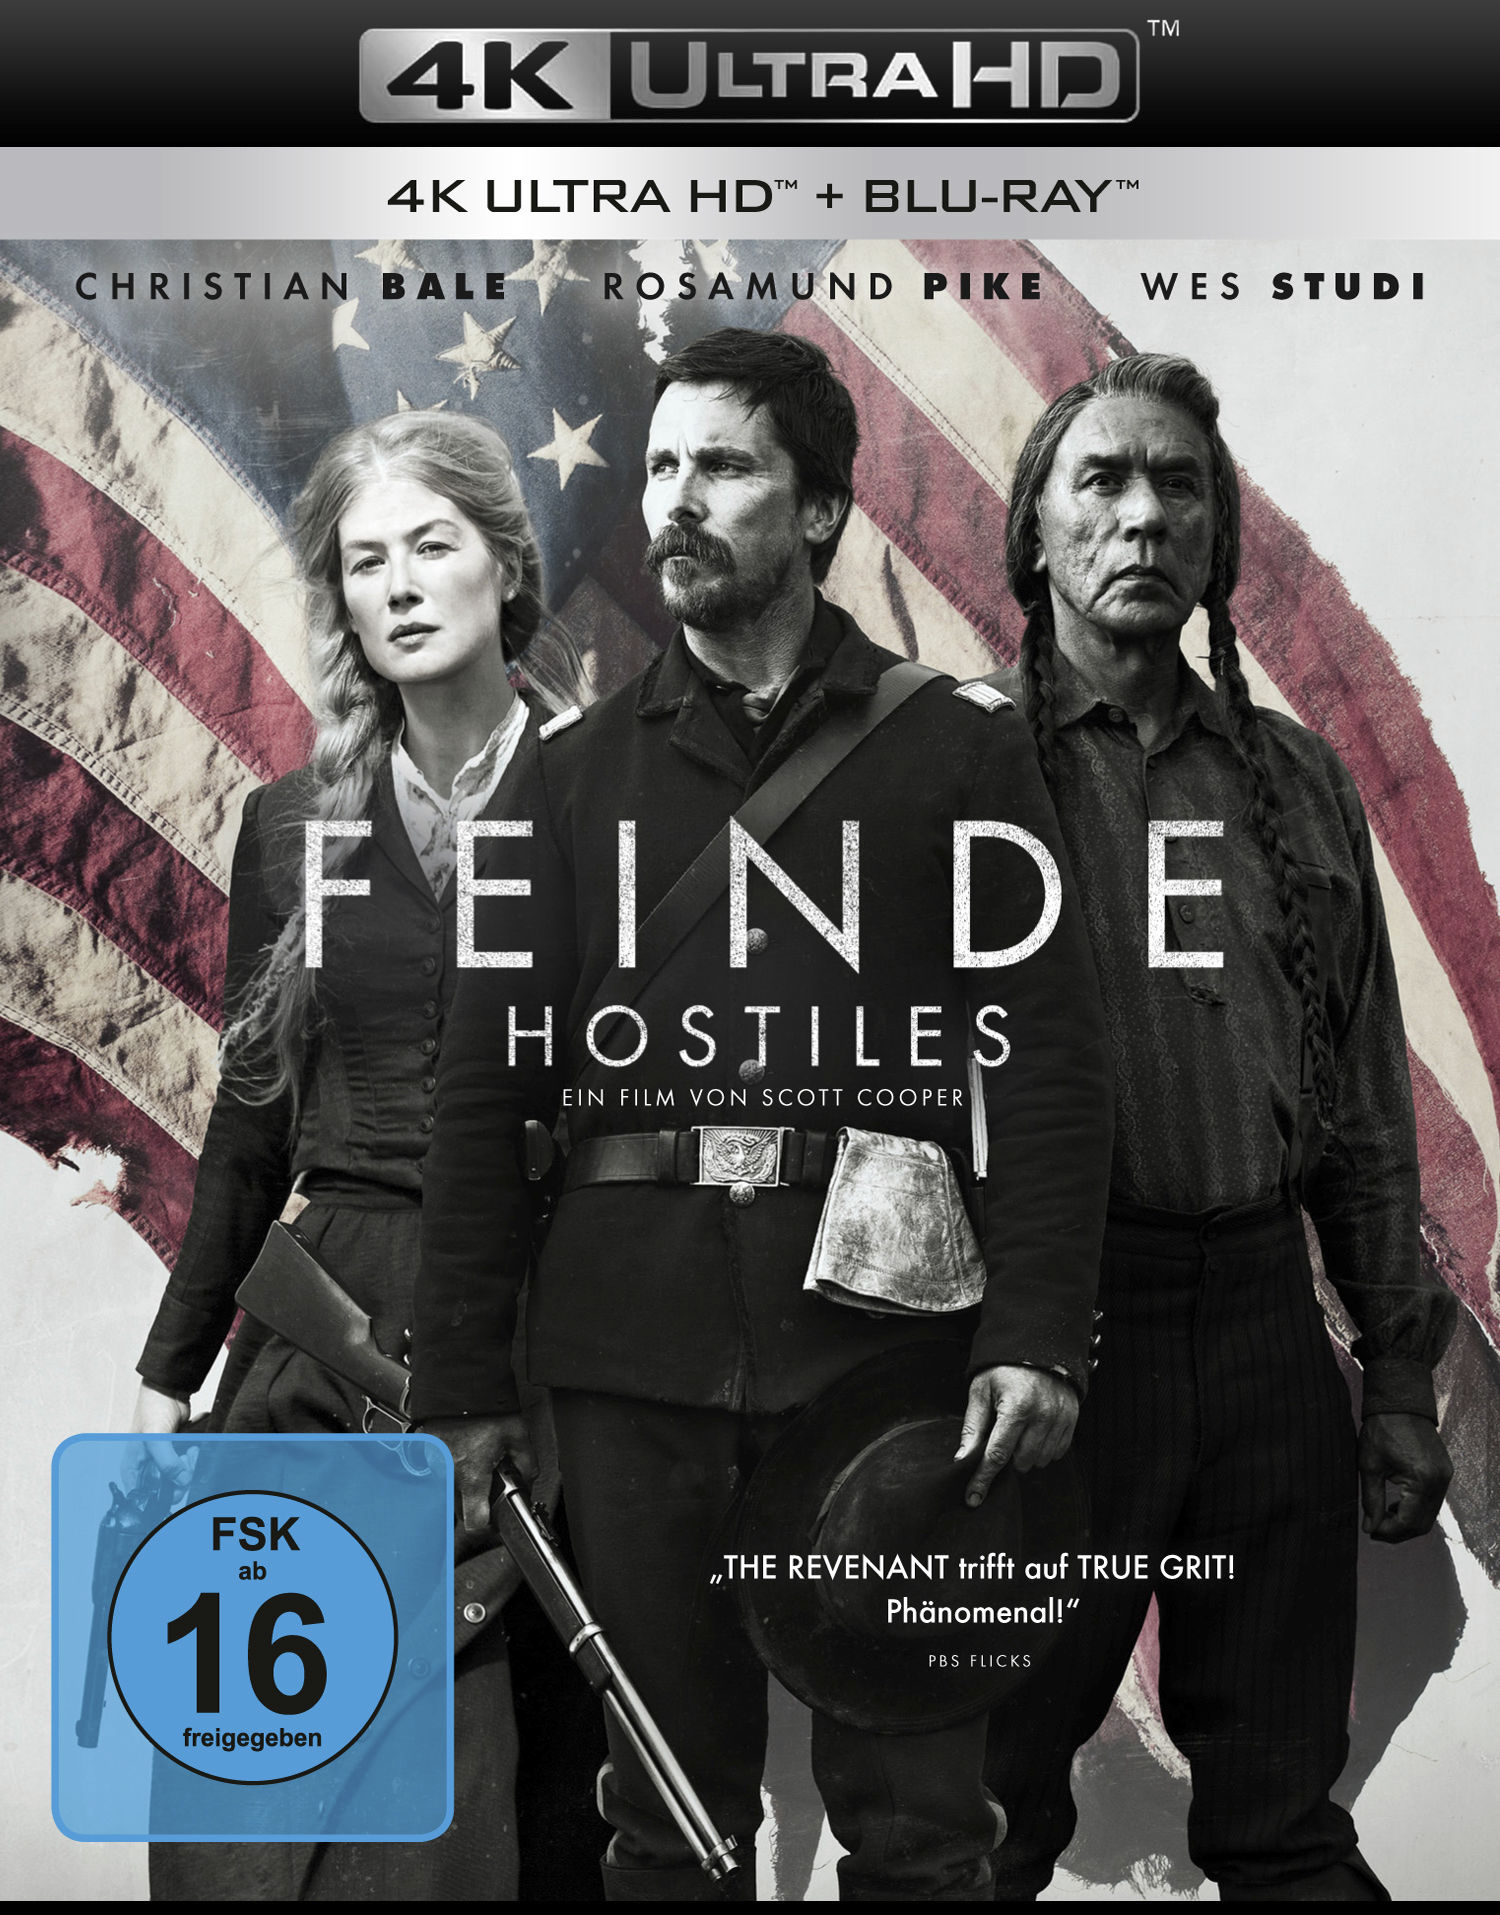 Feinde Hostiles Film